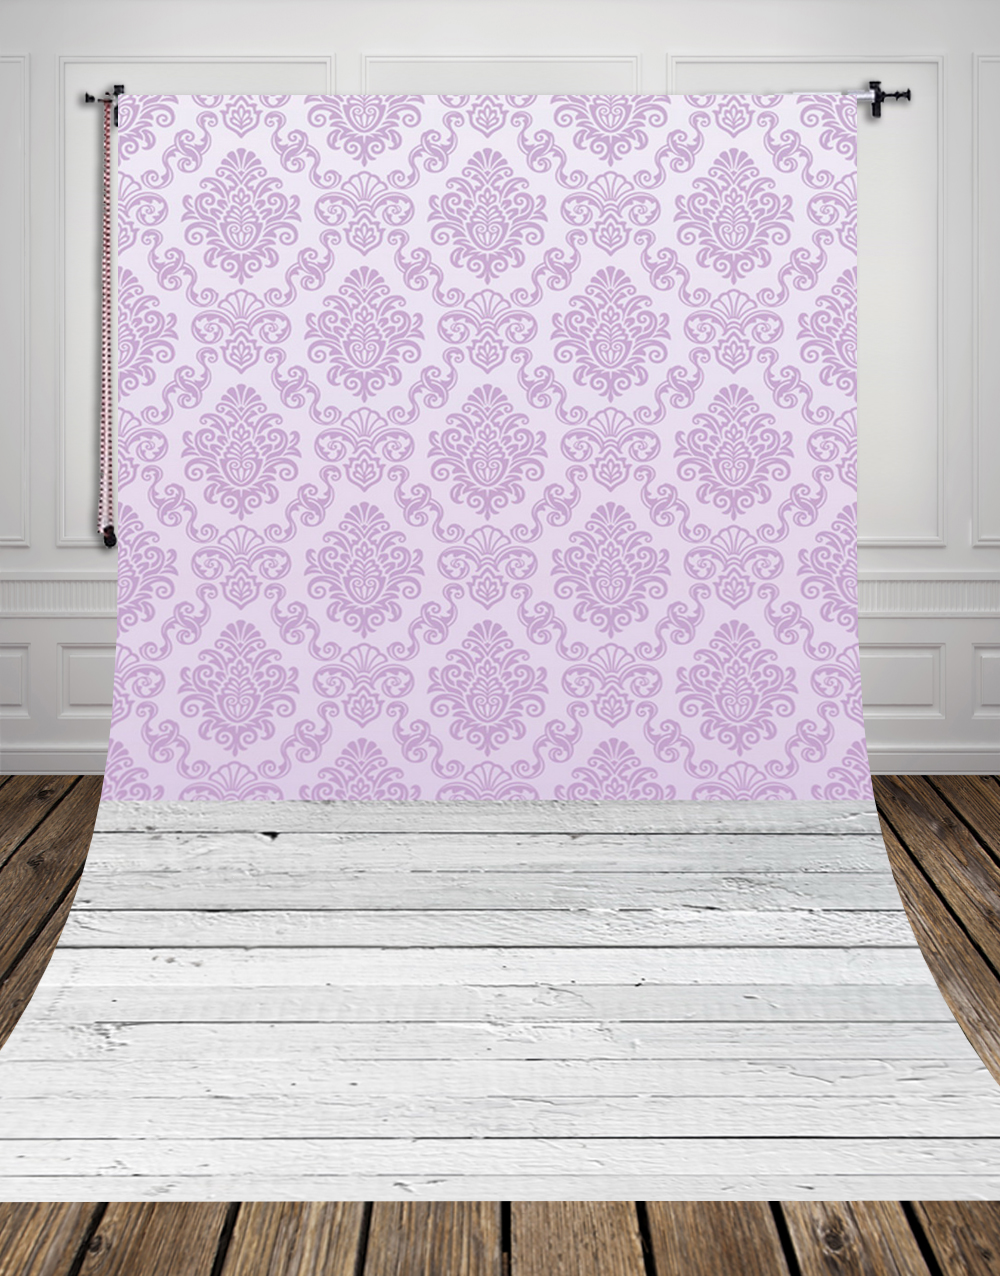 5x10ft(1.5x3m) light-colored wallpaper studio photo background made of  Art fabric printed with white floor for newborn D-9731<br>